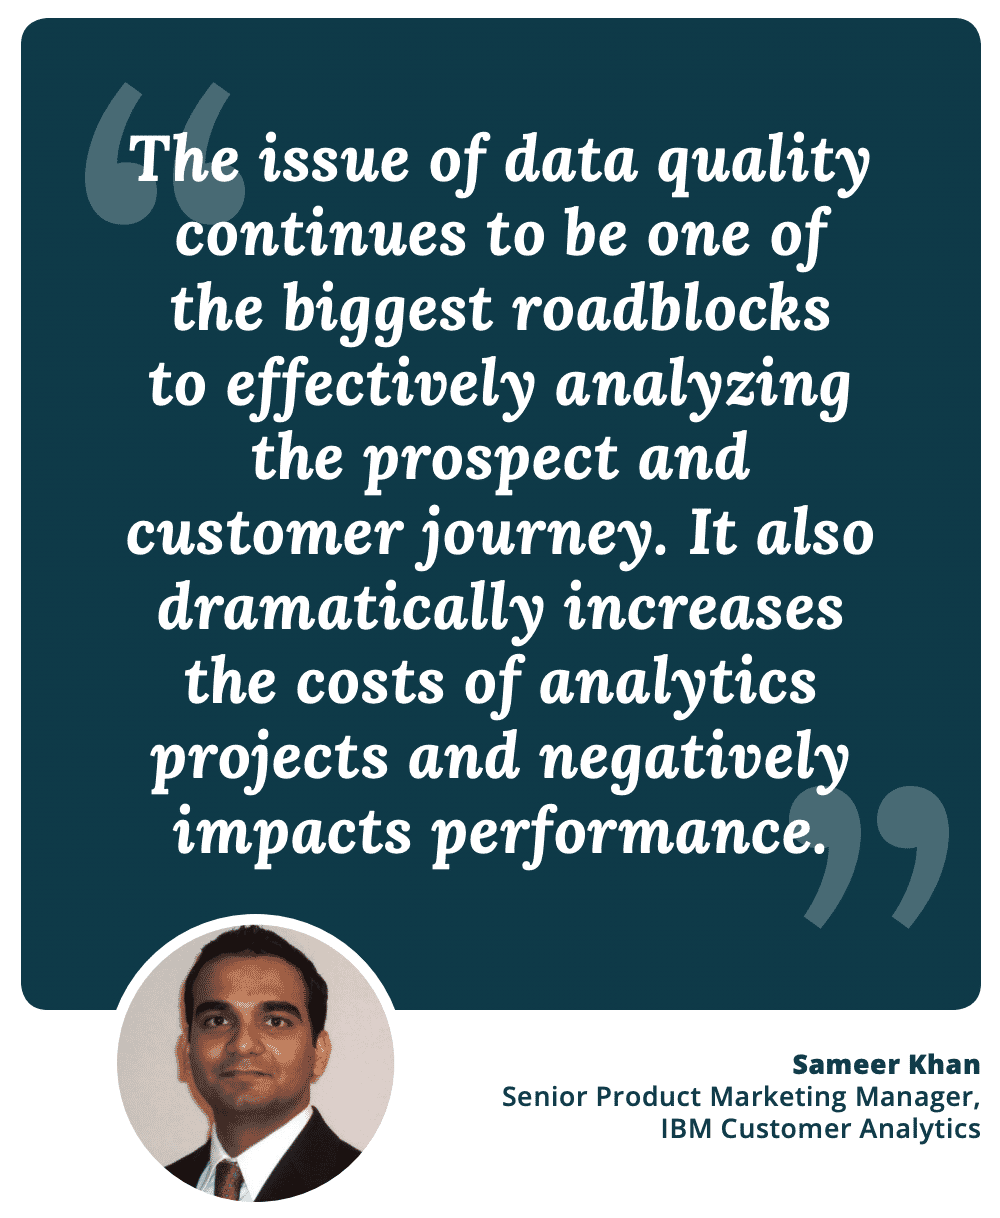 """The issue of data quality continues to be one of the biggest roadblocks to effectively analyzing the prospect and customer journey. It also dramatically increases the costs of analytics projects and negatively impacts performance."" - Sameer Khan, Sr. Product Marketing Manager, IBM Customer Analytics"